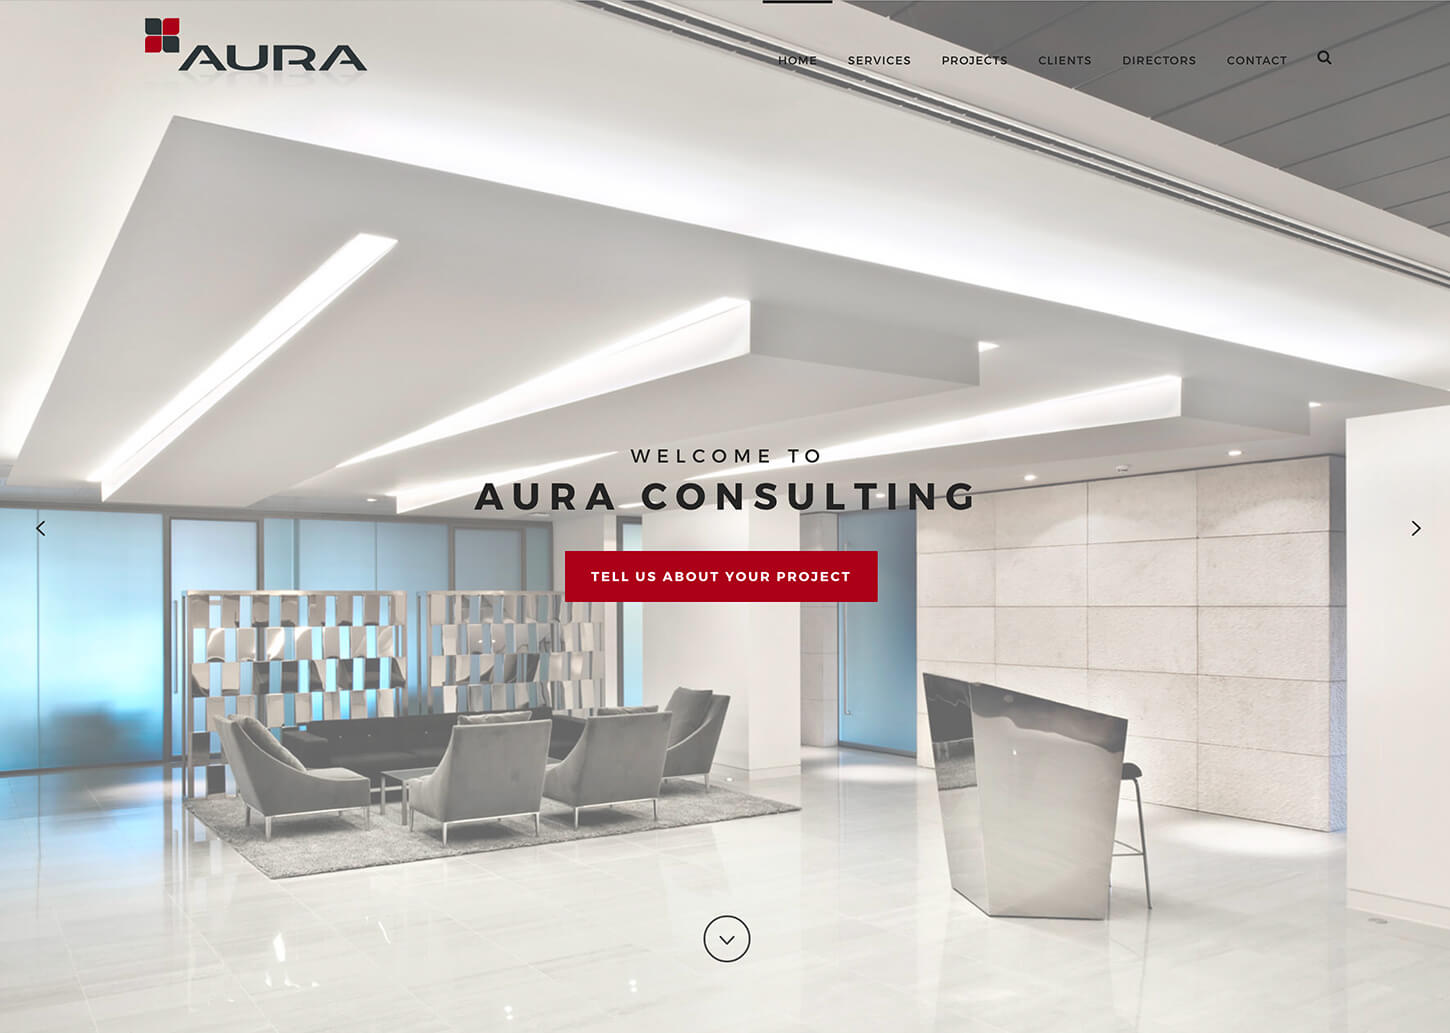 aura-consulting-user-experience